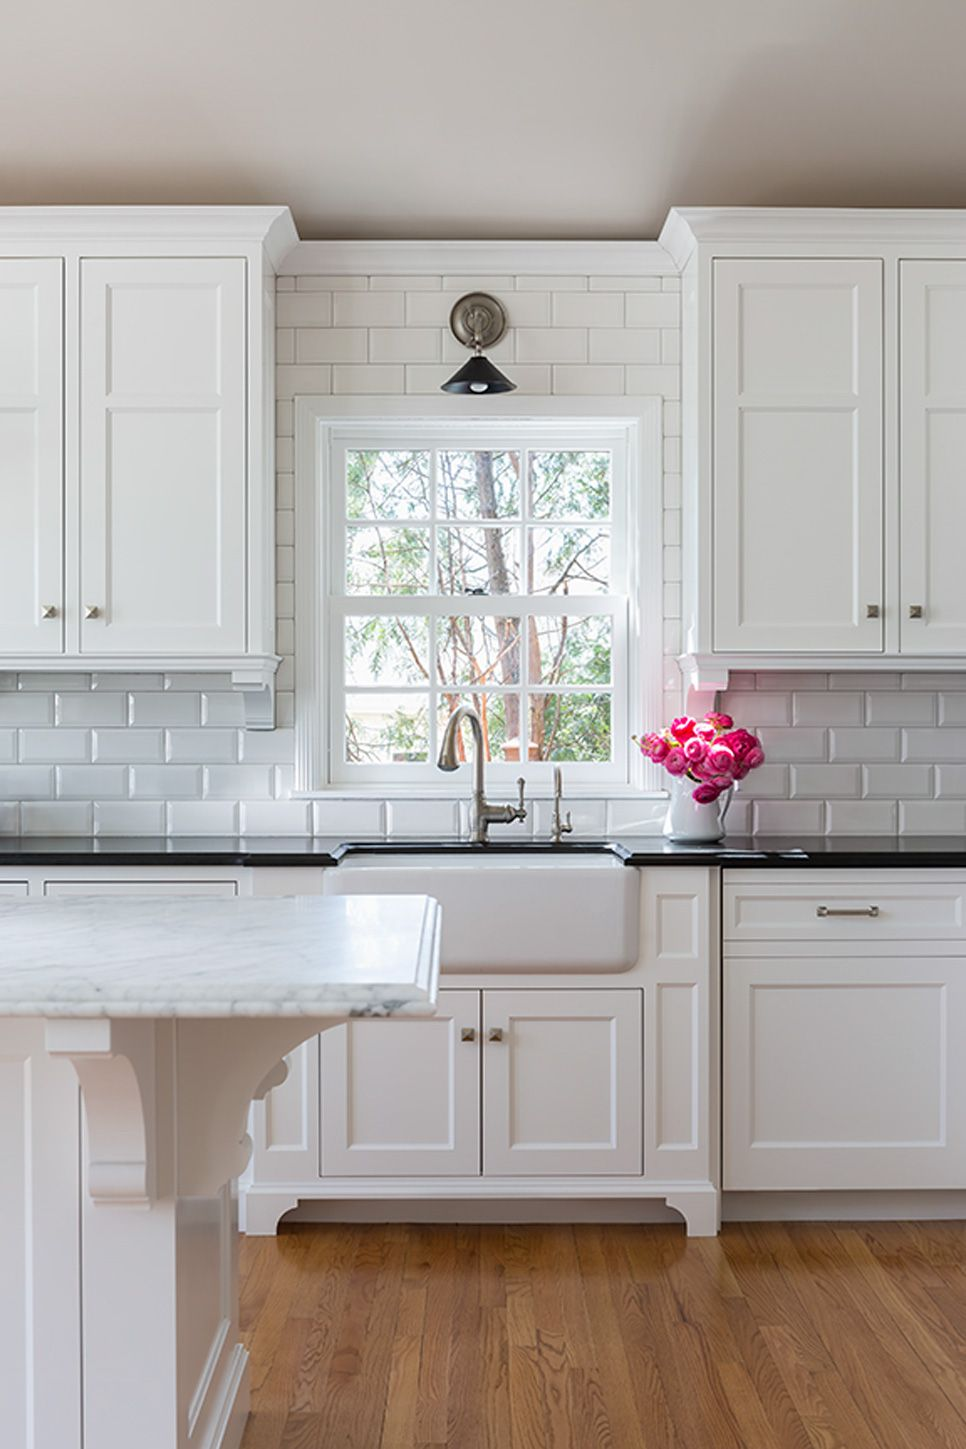 White Tiles Kit He D With White Cabinetry Check Out This Image From The Urban Electric Co Kitchen Design Home Kitchens Trendy Kitchen